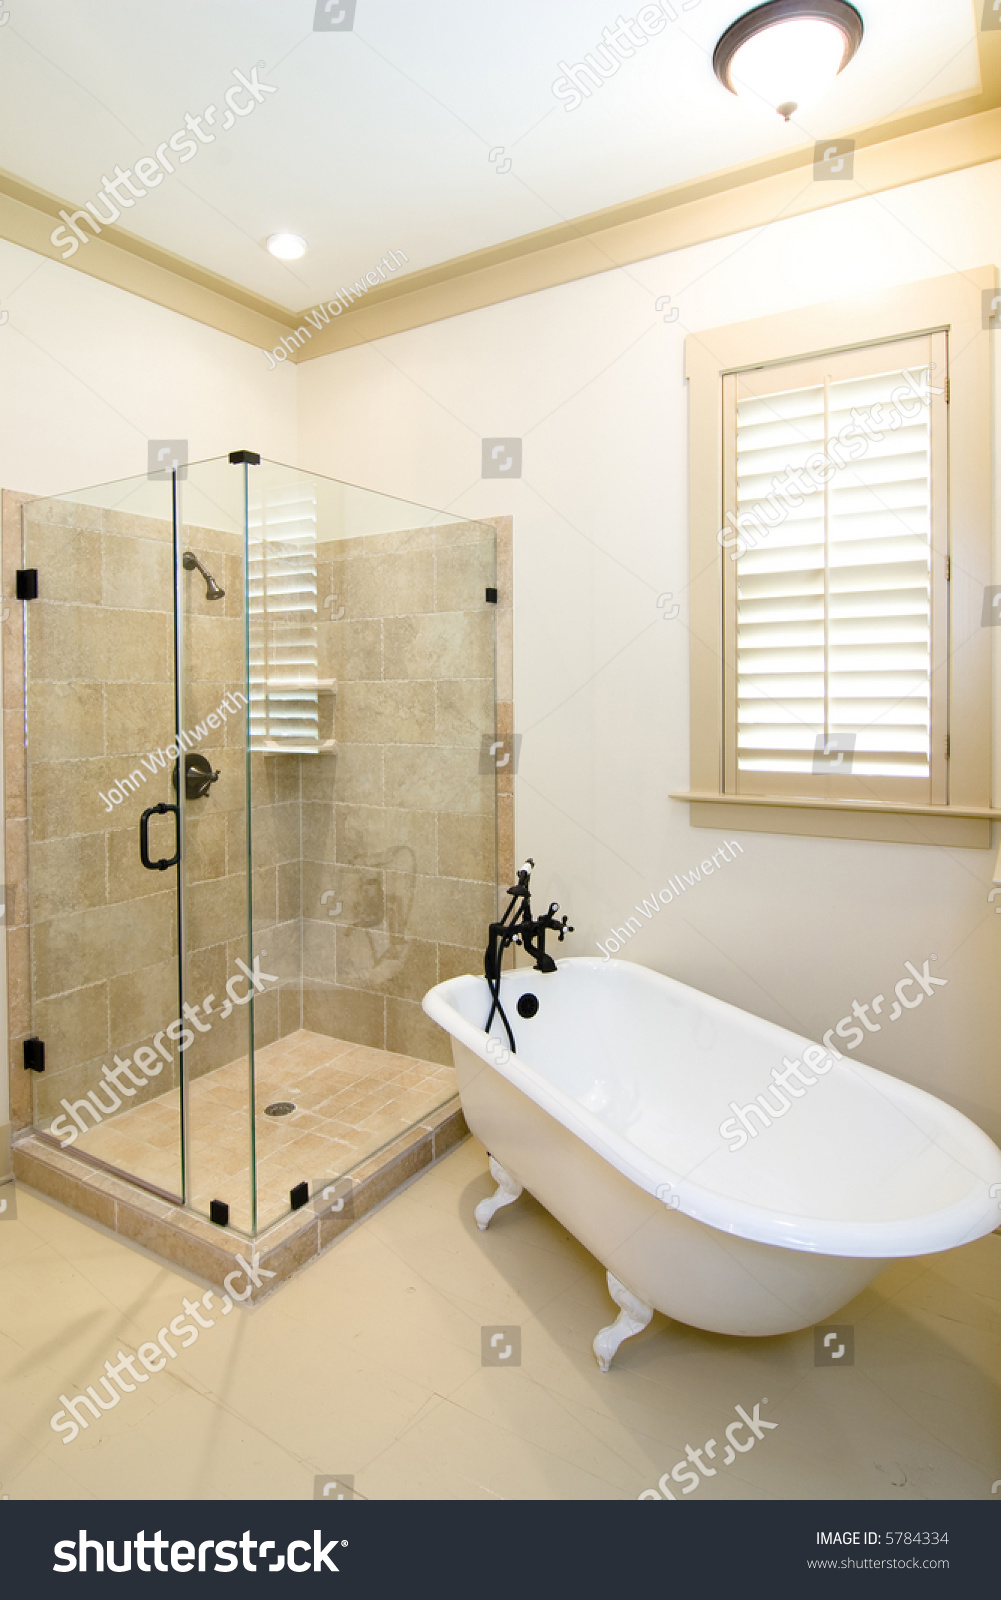 Rustic Yet Elegant Luxury Bathroom Glass Business Finance